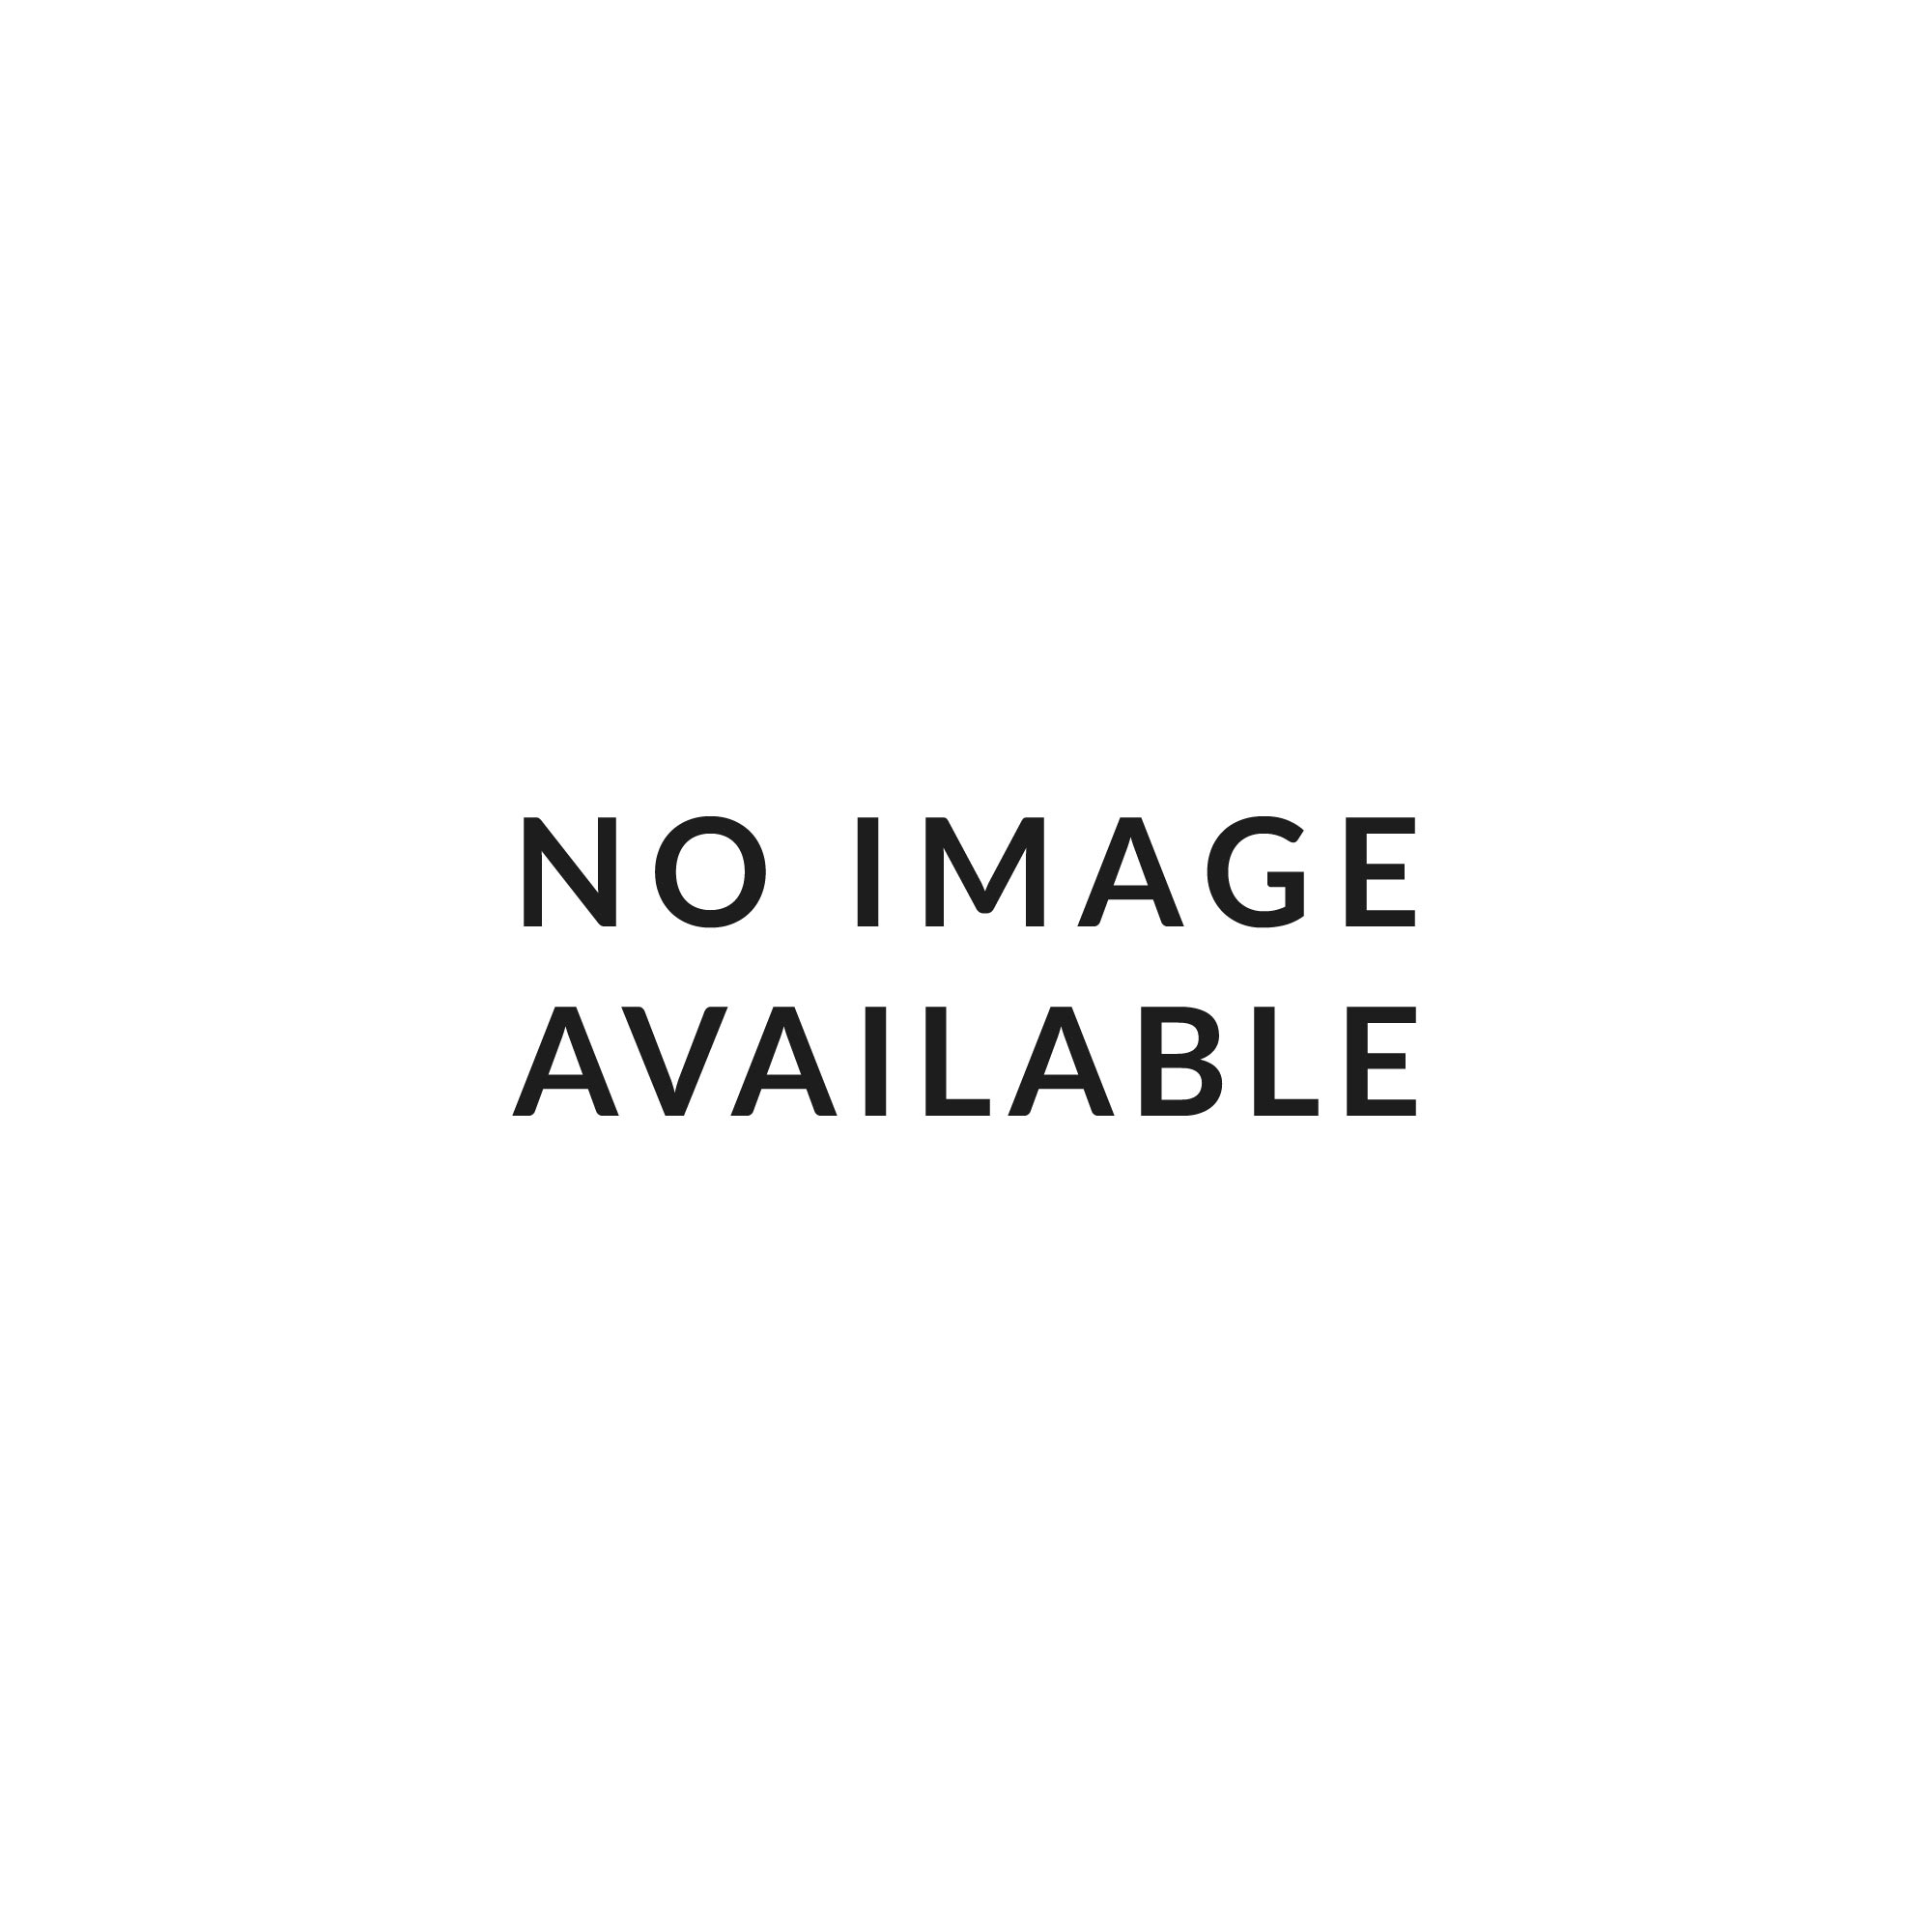 Goodwins 18ct White Gold Diamond Stud Earrings.